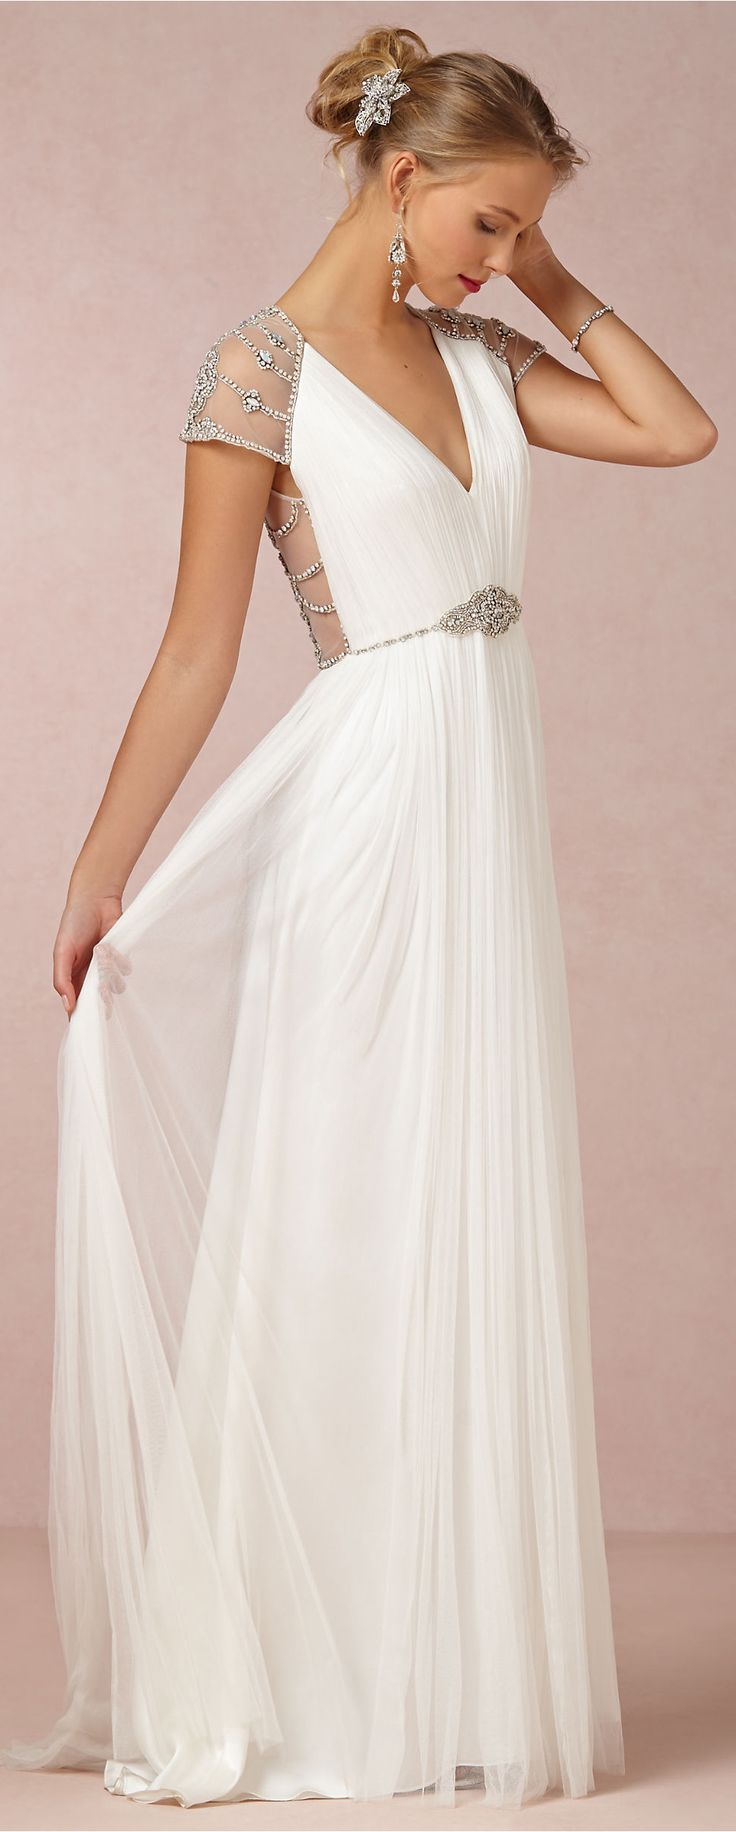 Love this for more of an informal wedding dress. We want our wedding on our property, and this just might be the perfect dress for that!